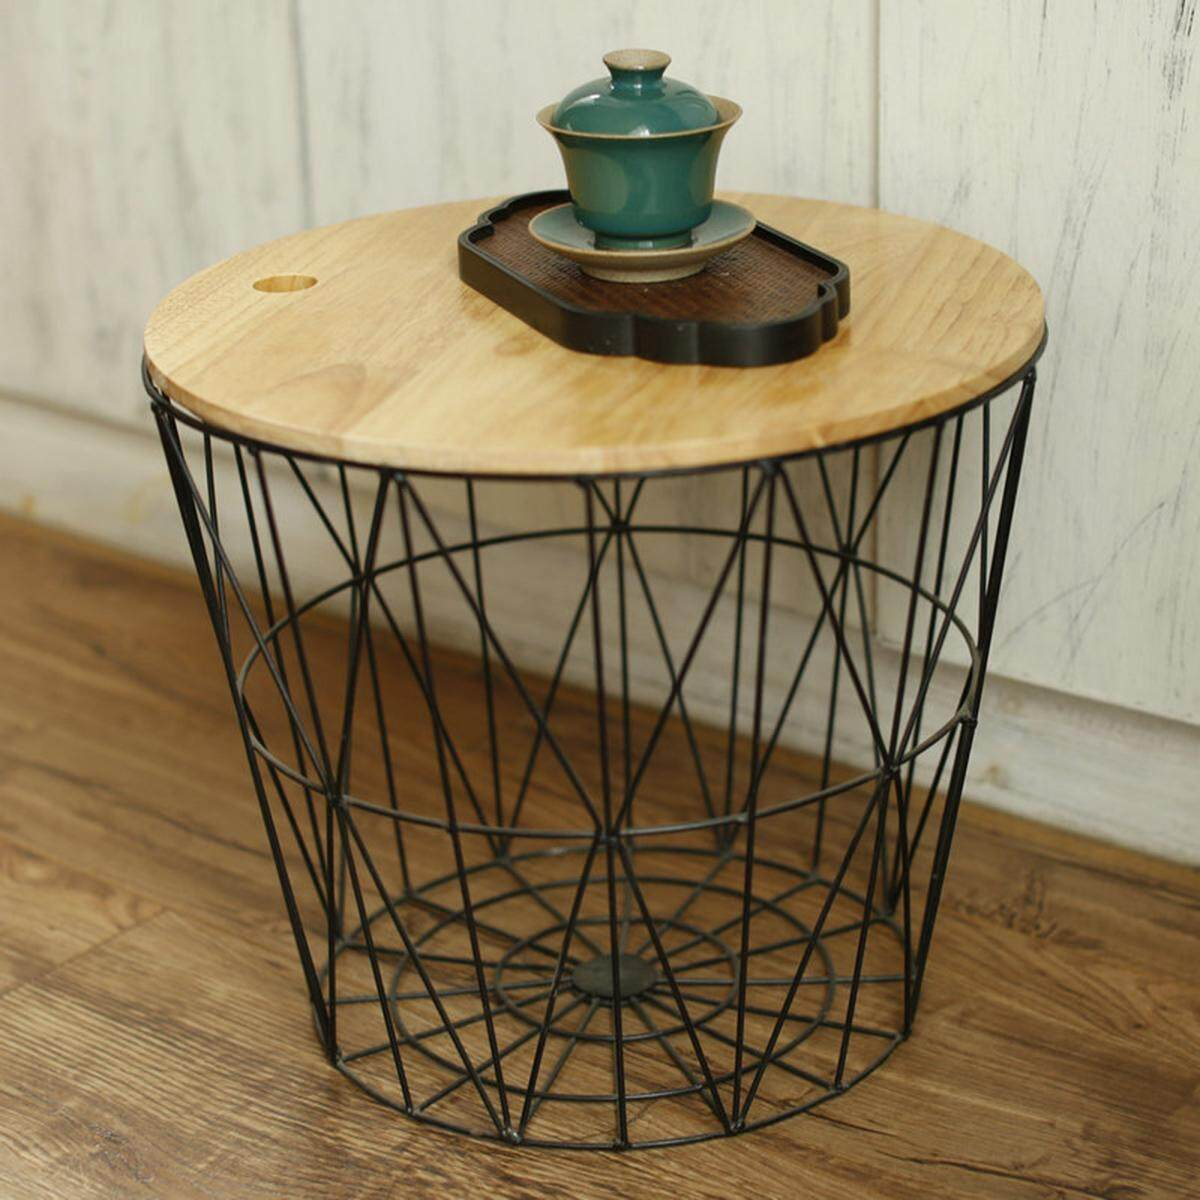 Picture of: White Metal Wire Basket Wooden Top Side Table Storage Loft Living Home Furniture Without Cover Large Black Without Cover Lazada Ph